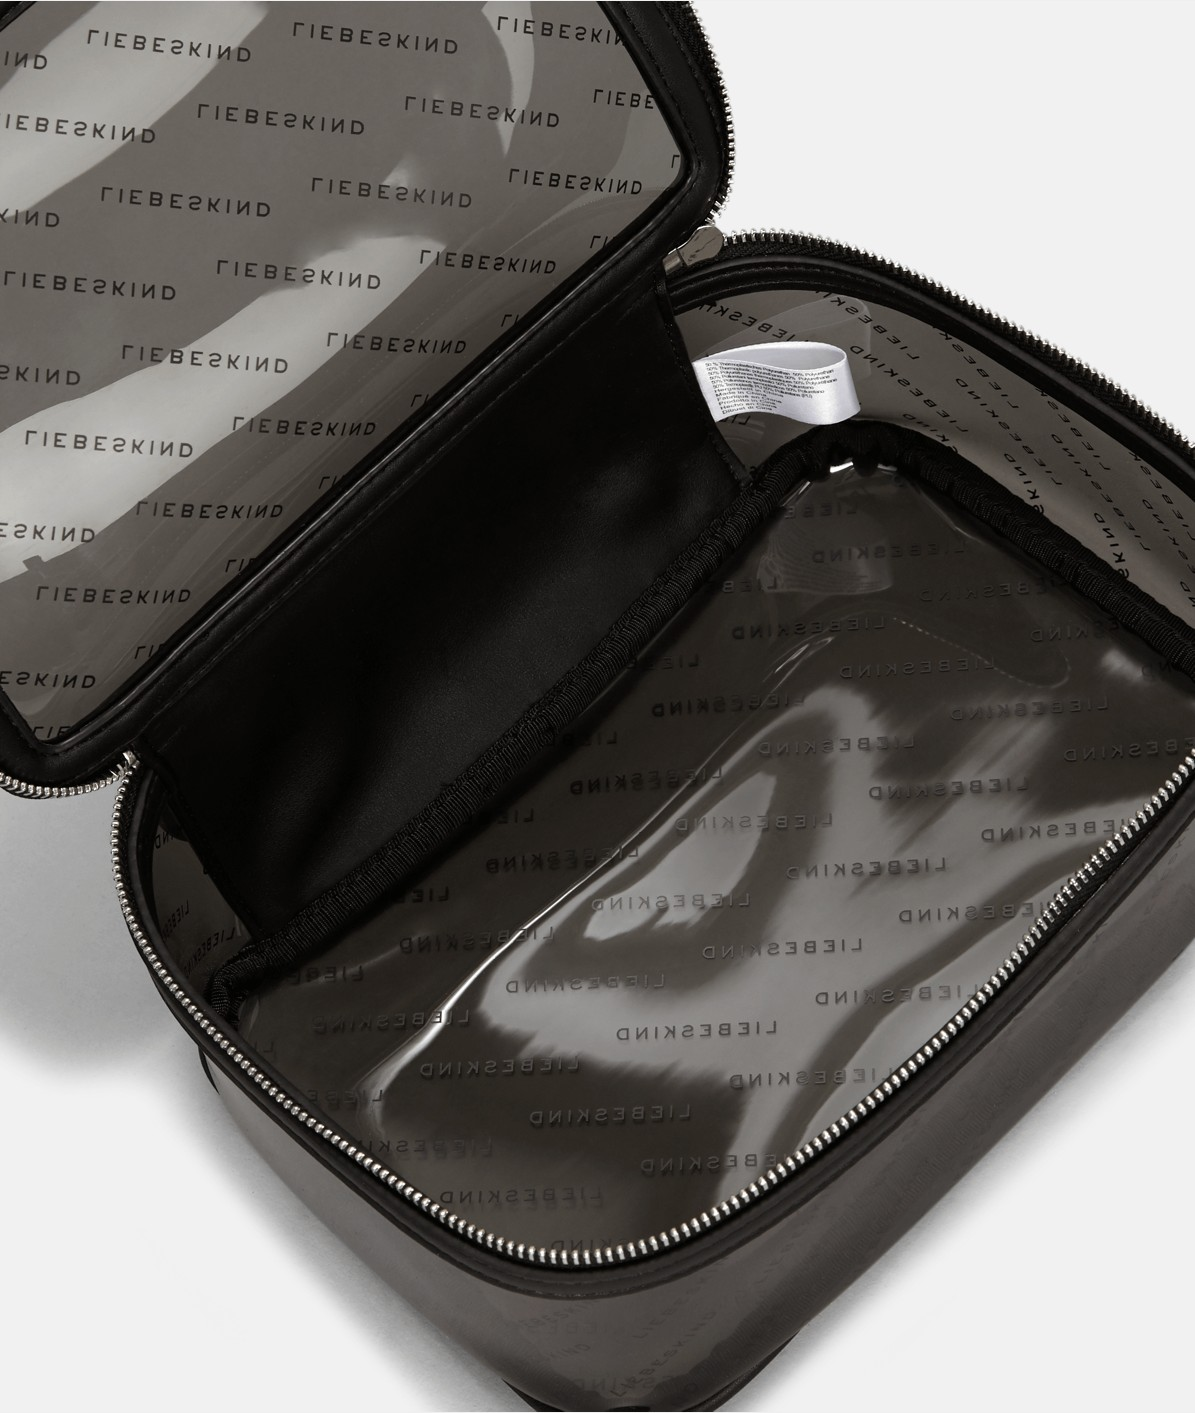 Transparent pouch with a logo print from liebeskind